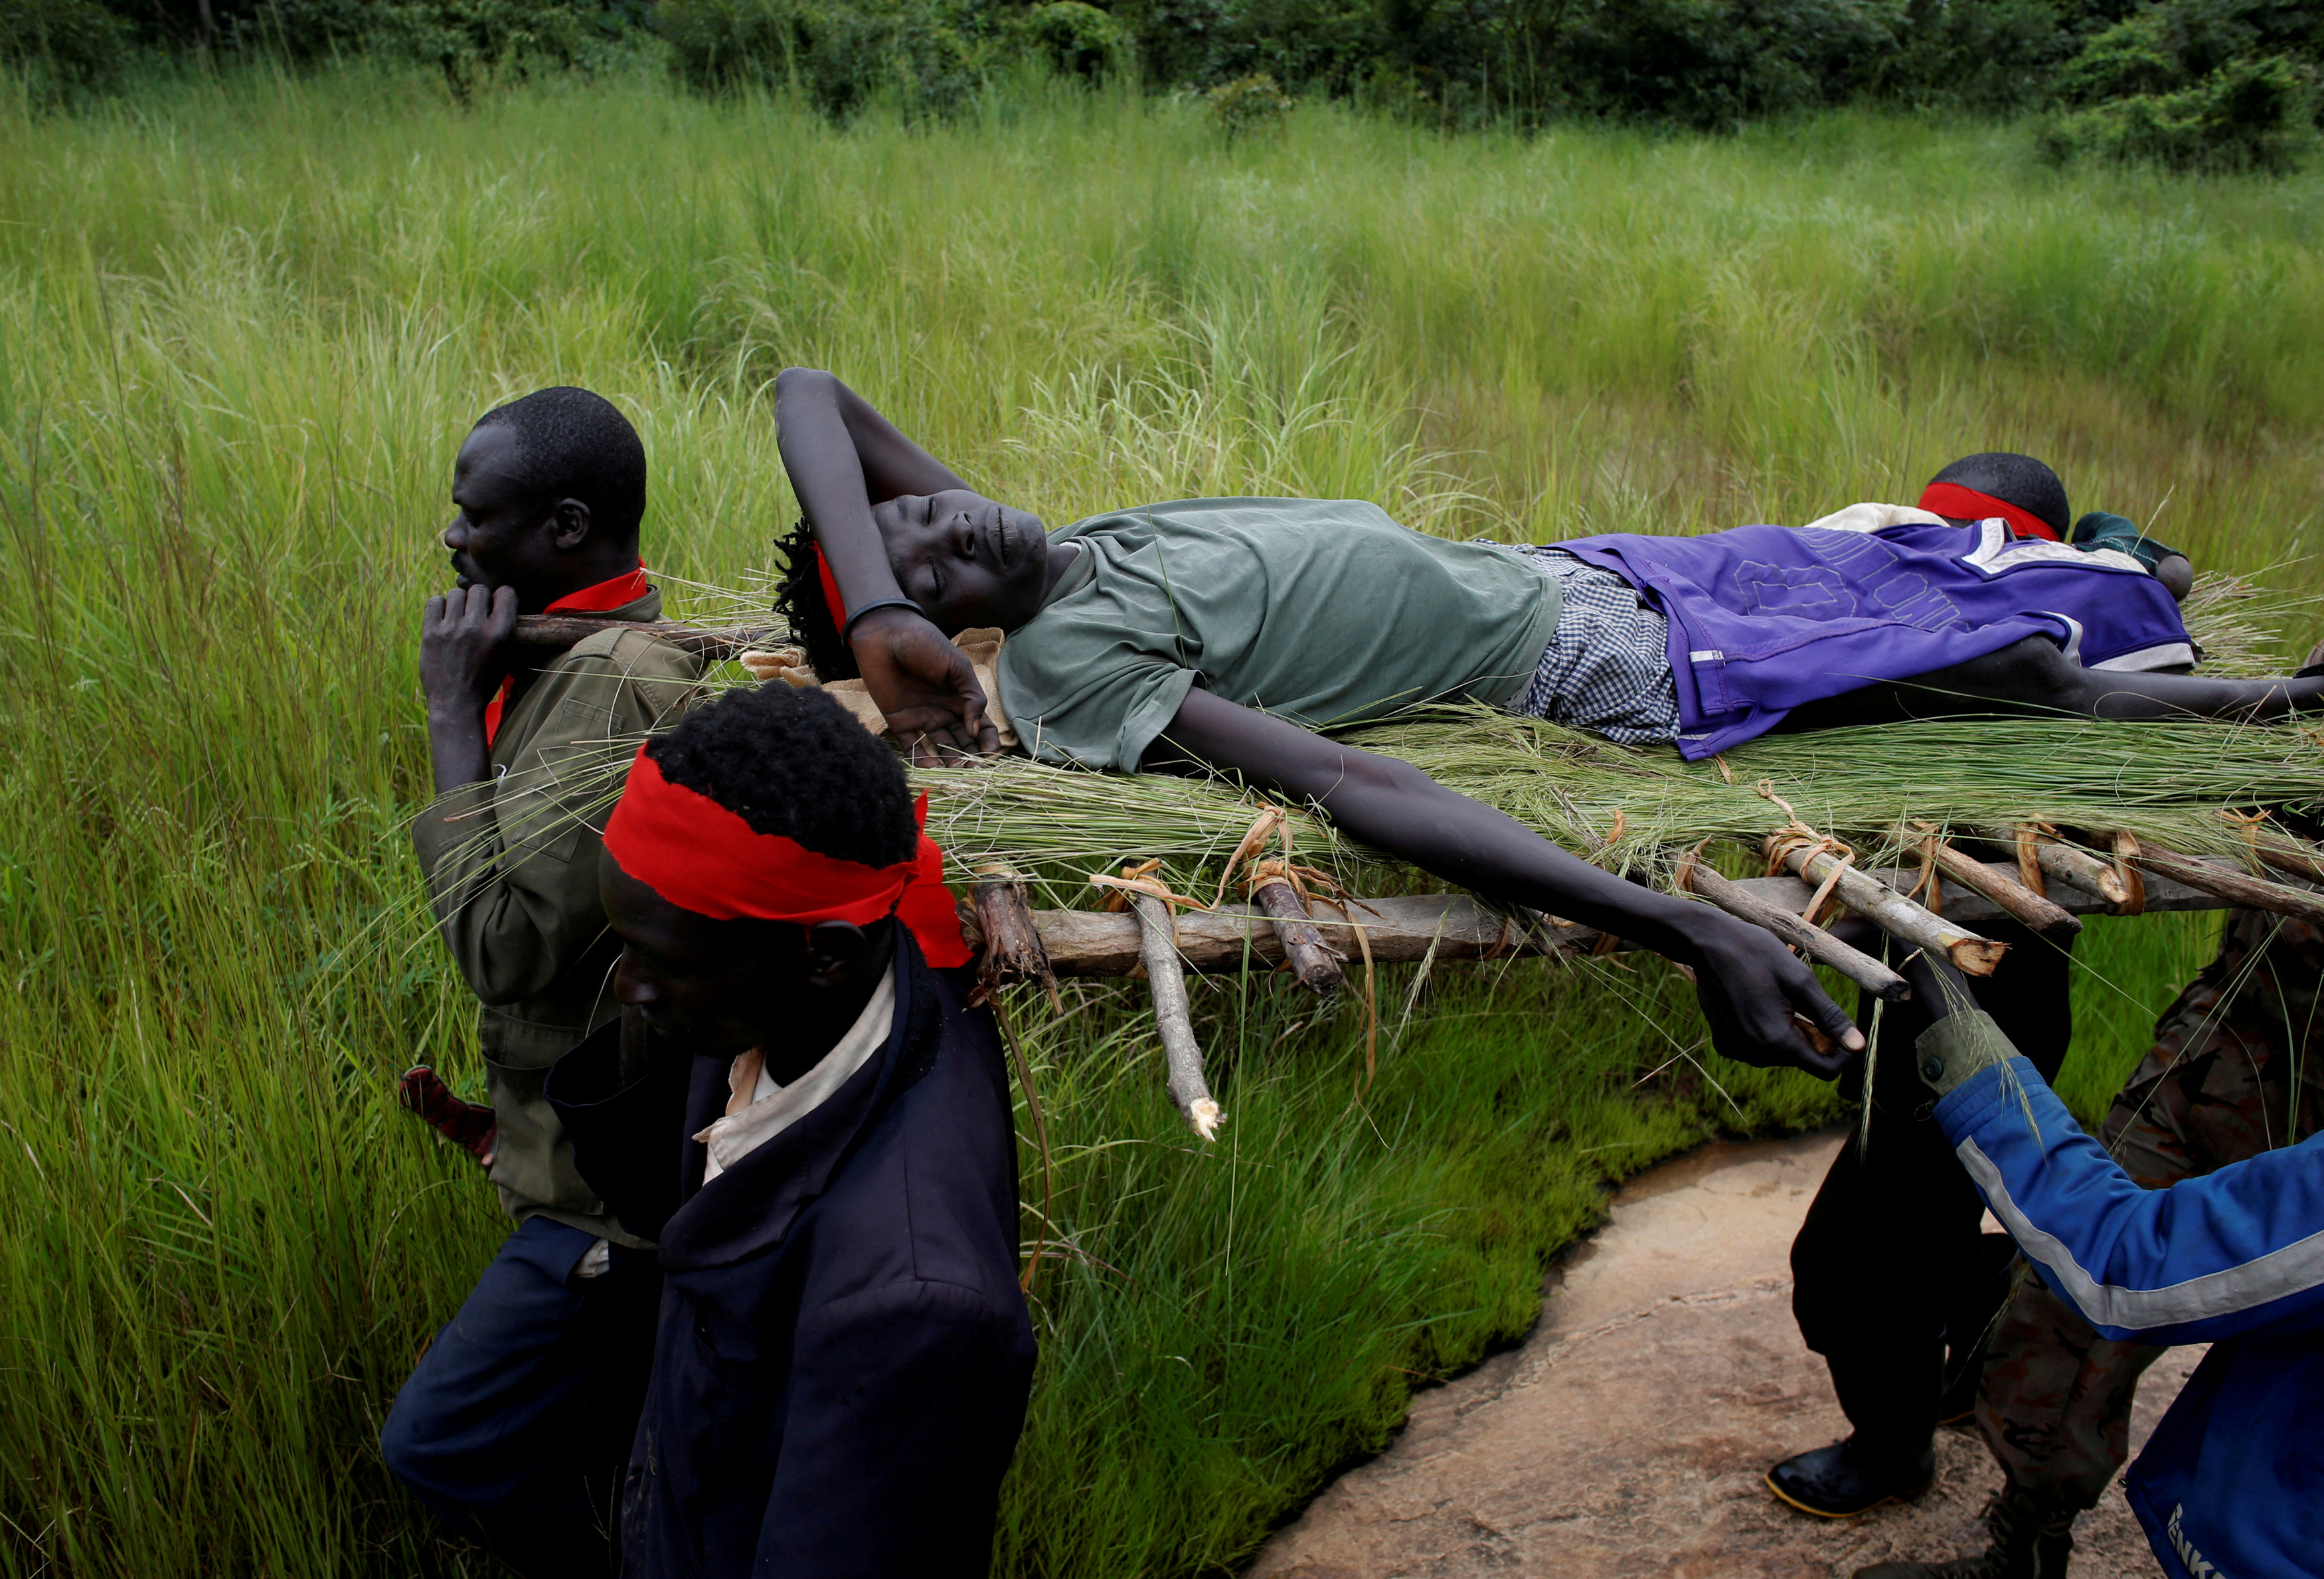 SPLA-IO rebels carry an injured rebel after an assault on government SPLA soldiers, on the road between Kaya and Yondu, South Sudan, Aug. 26, 2017.